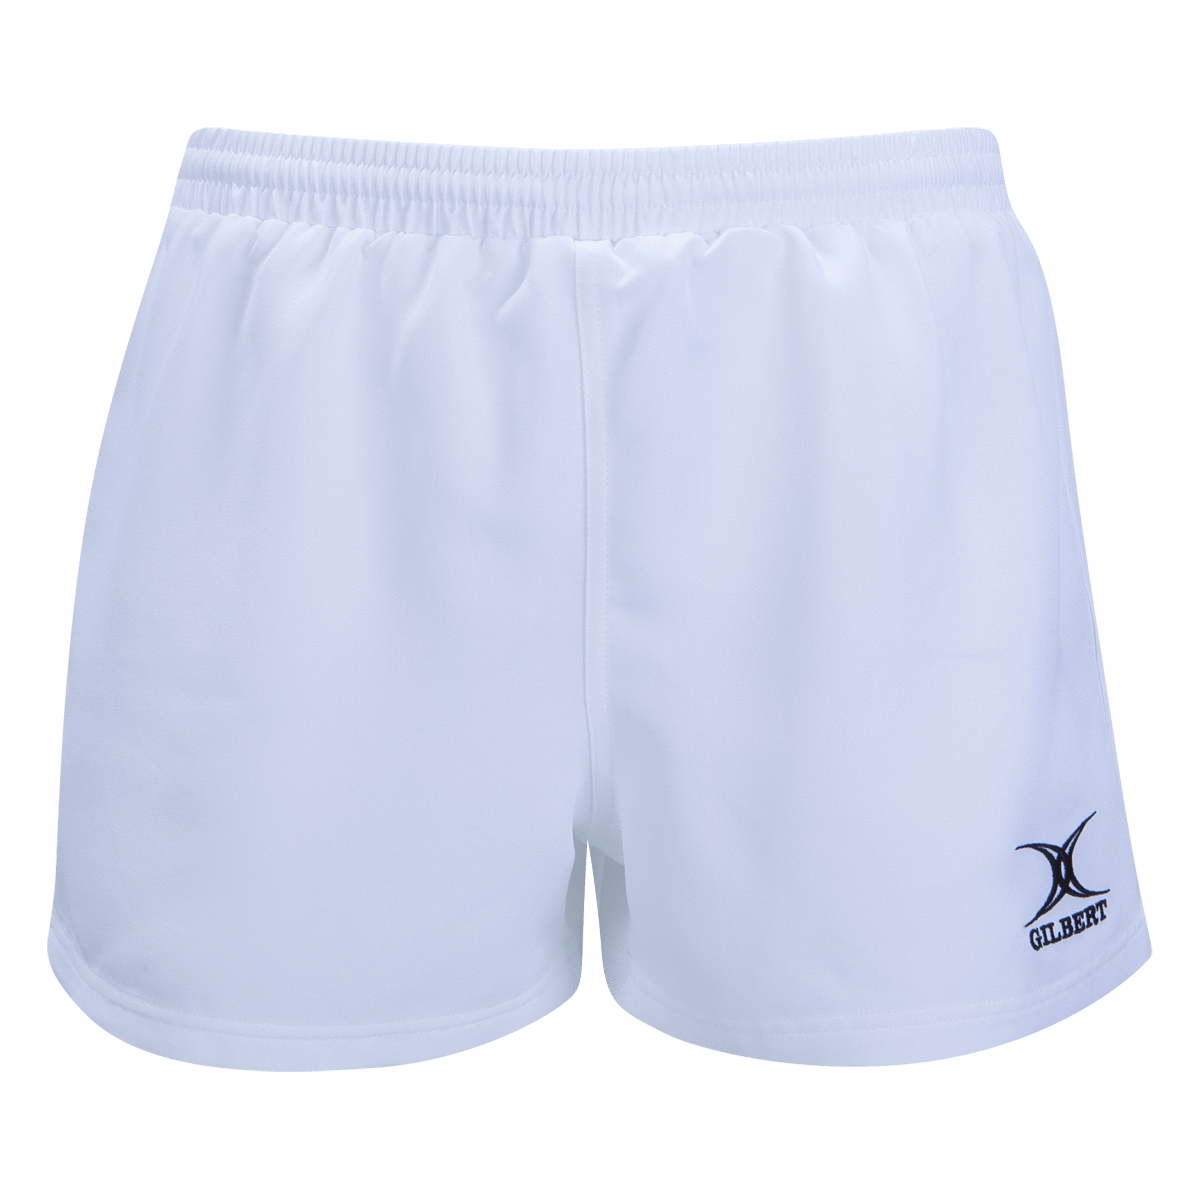 World Rugby Shop / Gilbert Saracen Shorts